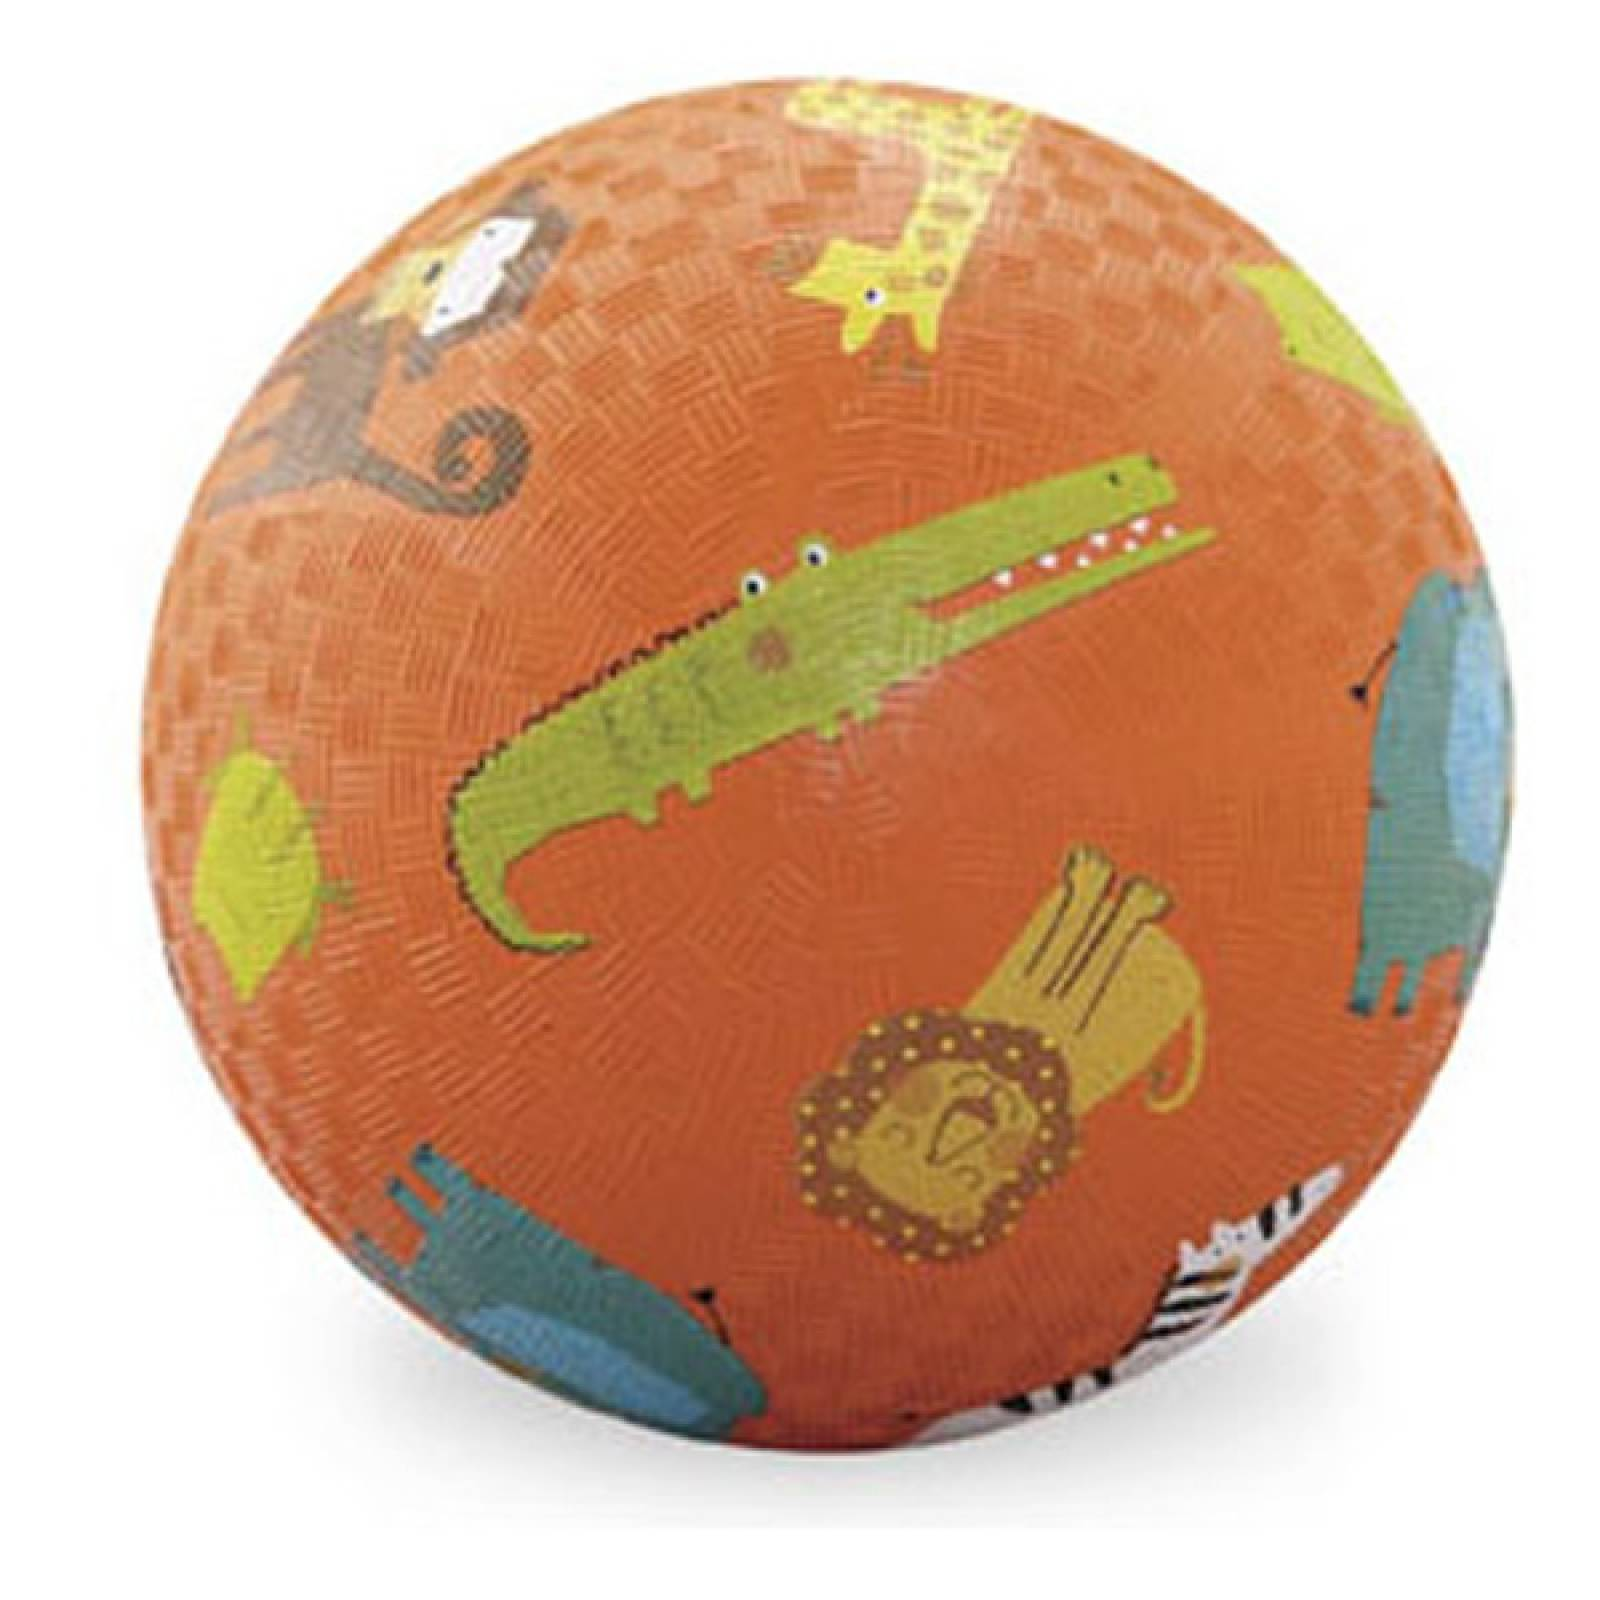 Orange Jungle Animal - Large Picture Ball 18cm